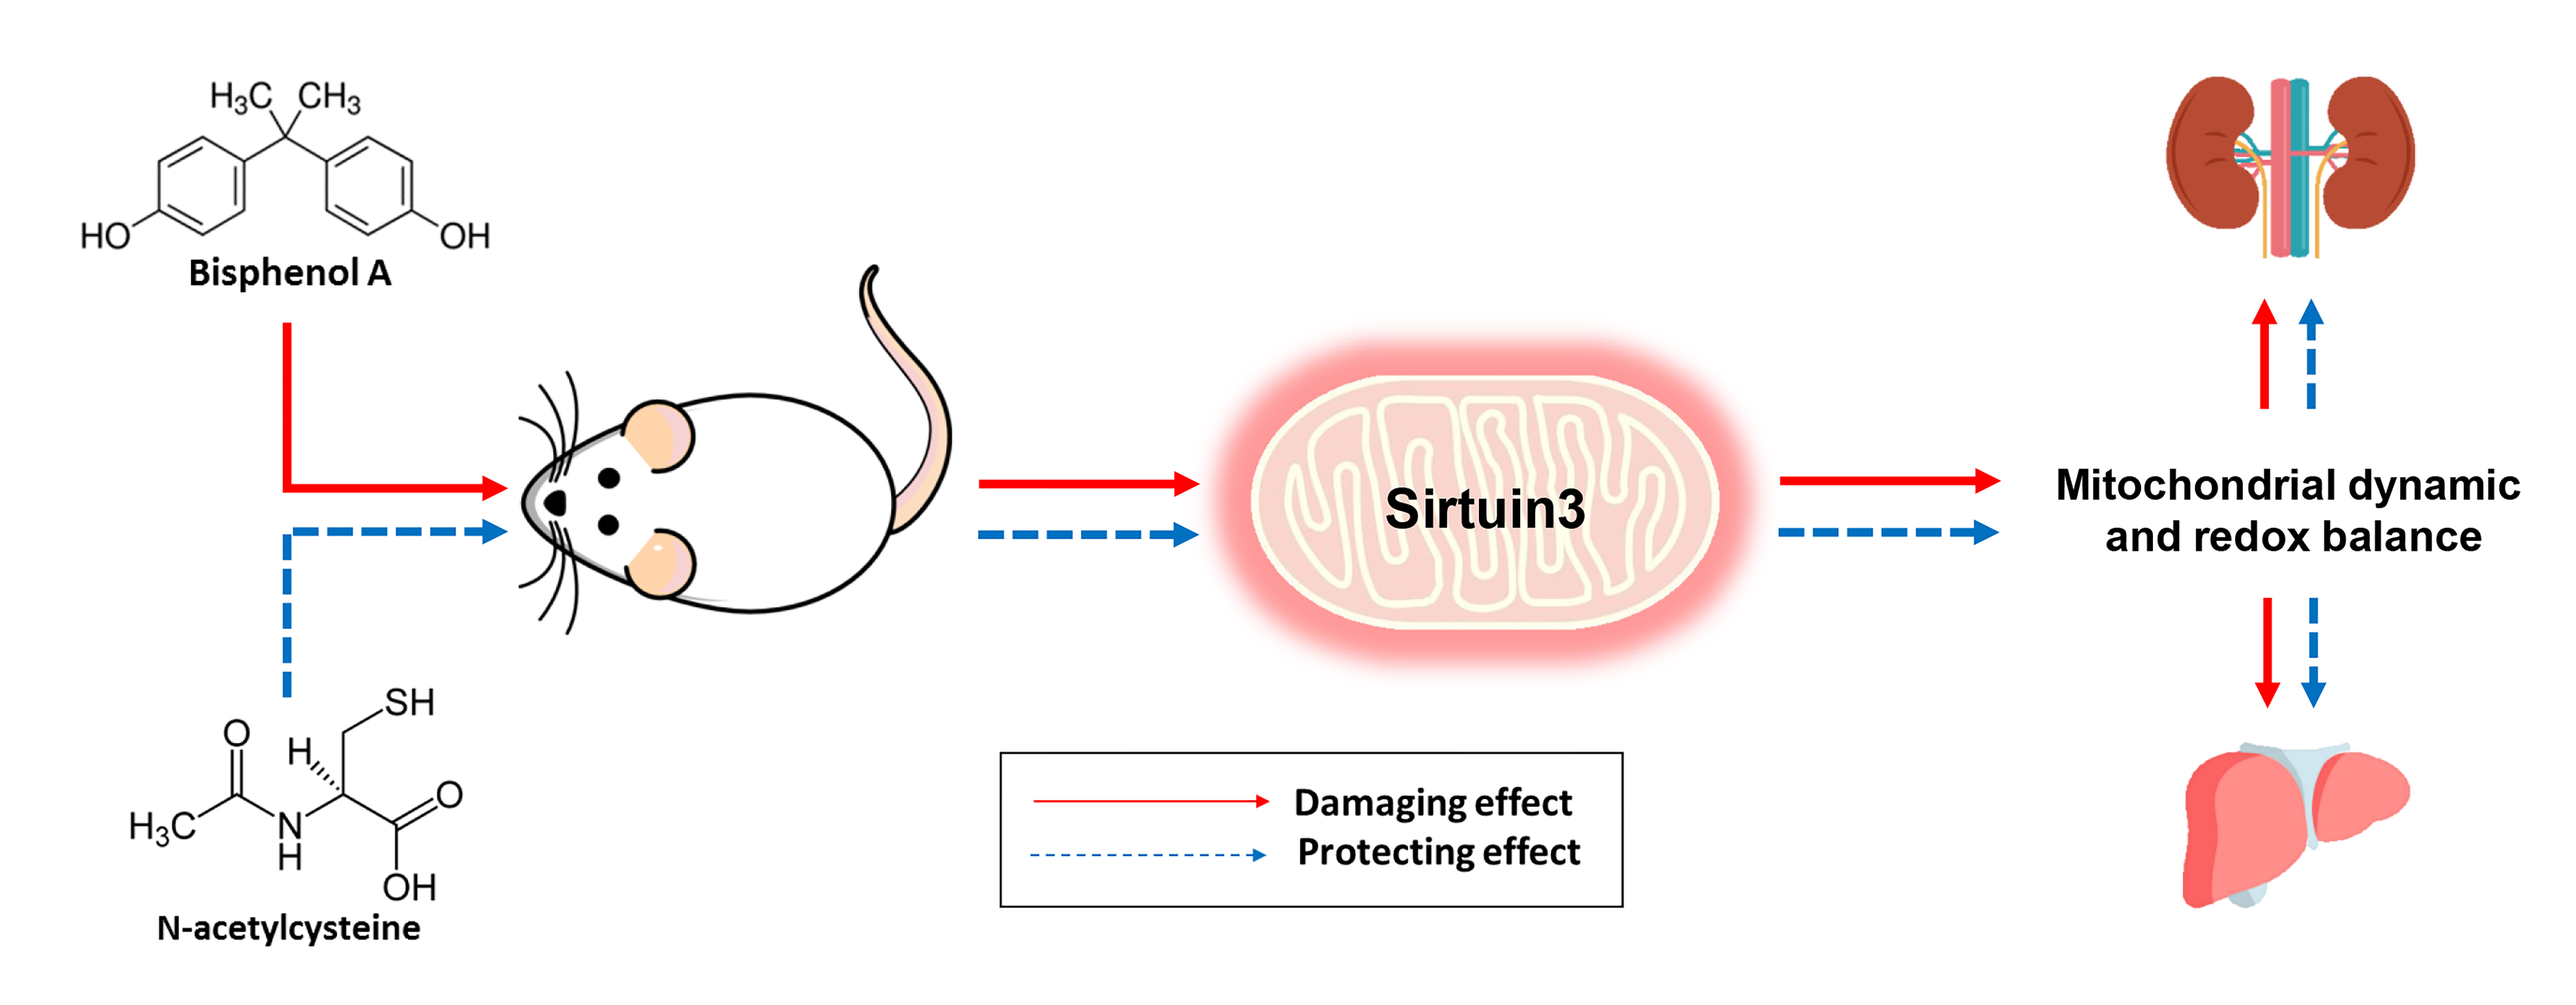 IJMS | Free Full-Text | Activation of Sirtuin 3 and Maintenance of